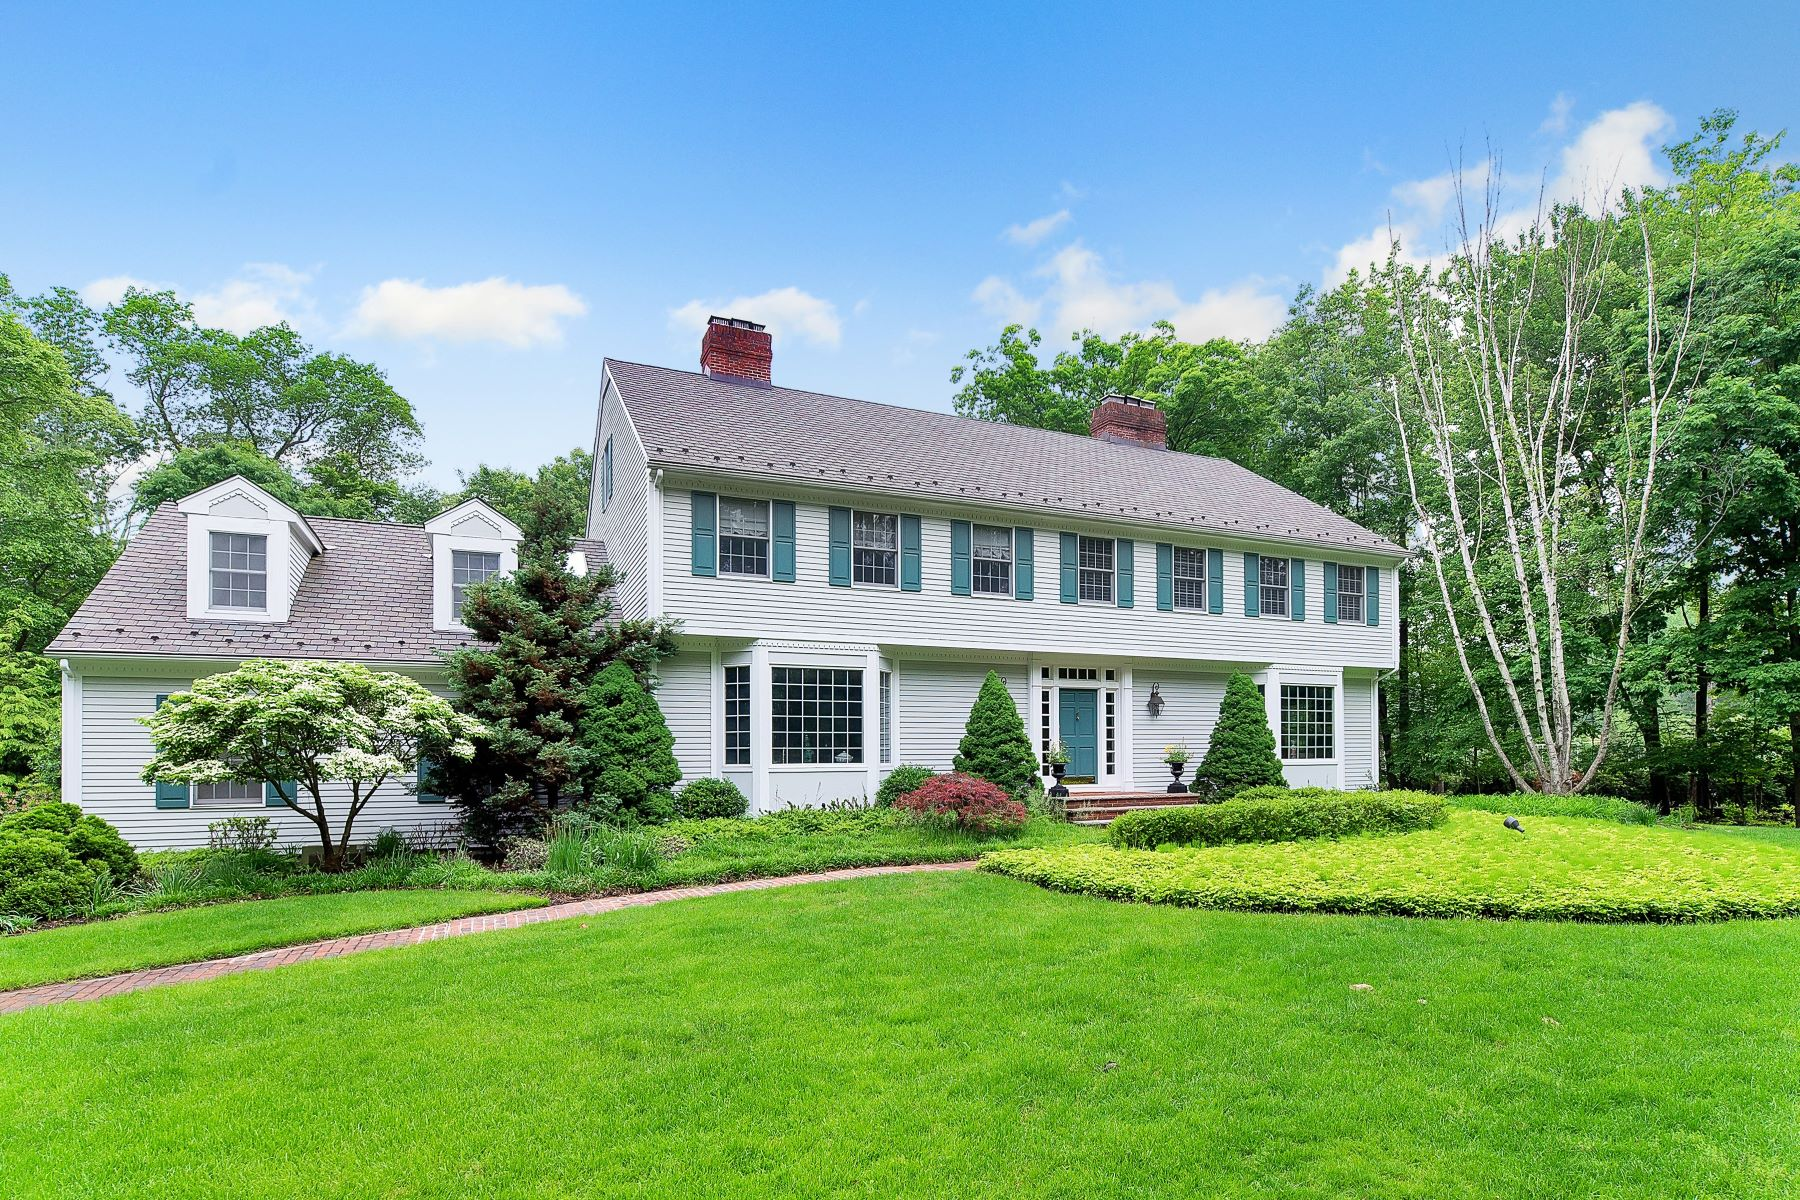 Single Family Homes for Sale at Classic Center Hall Colonial 21 Cameron Rd Saddle River, New Jersey 07458 United States